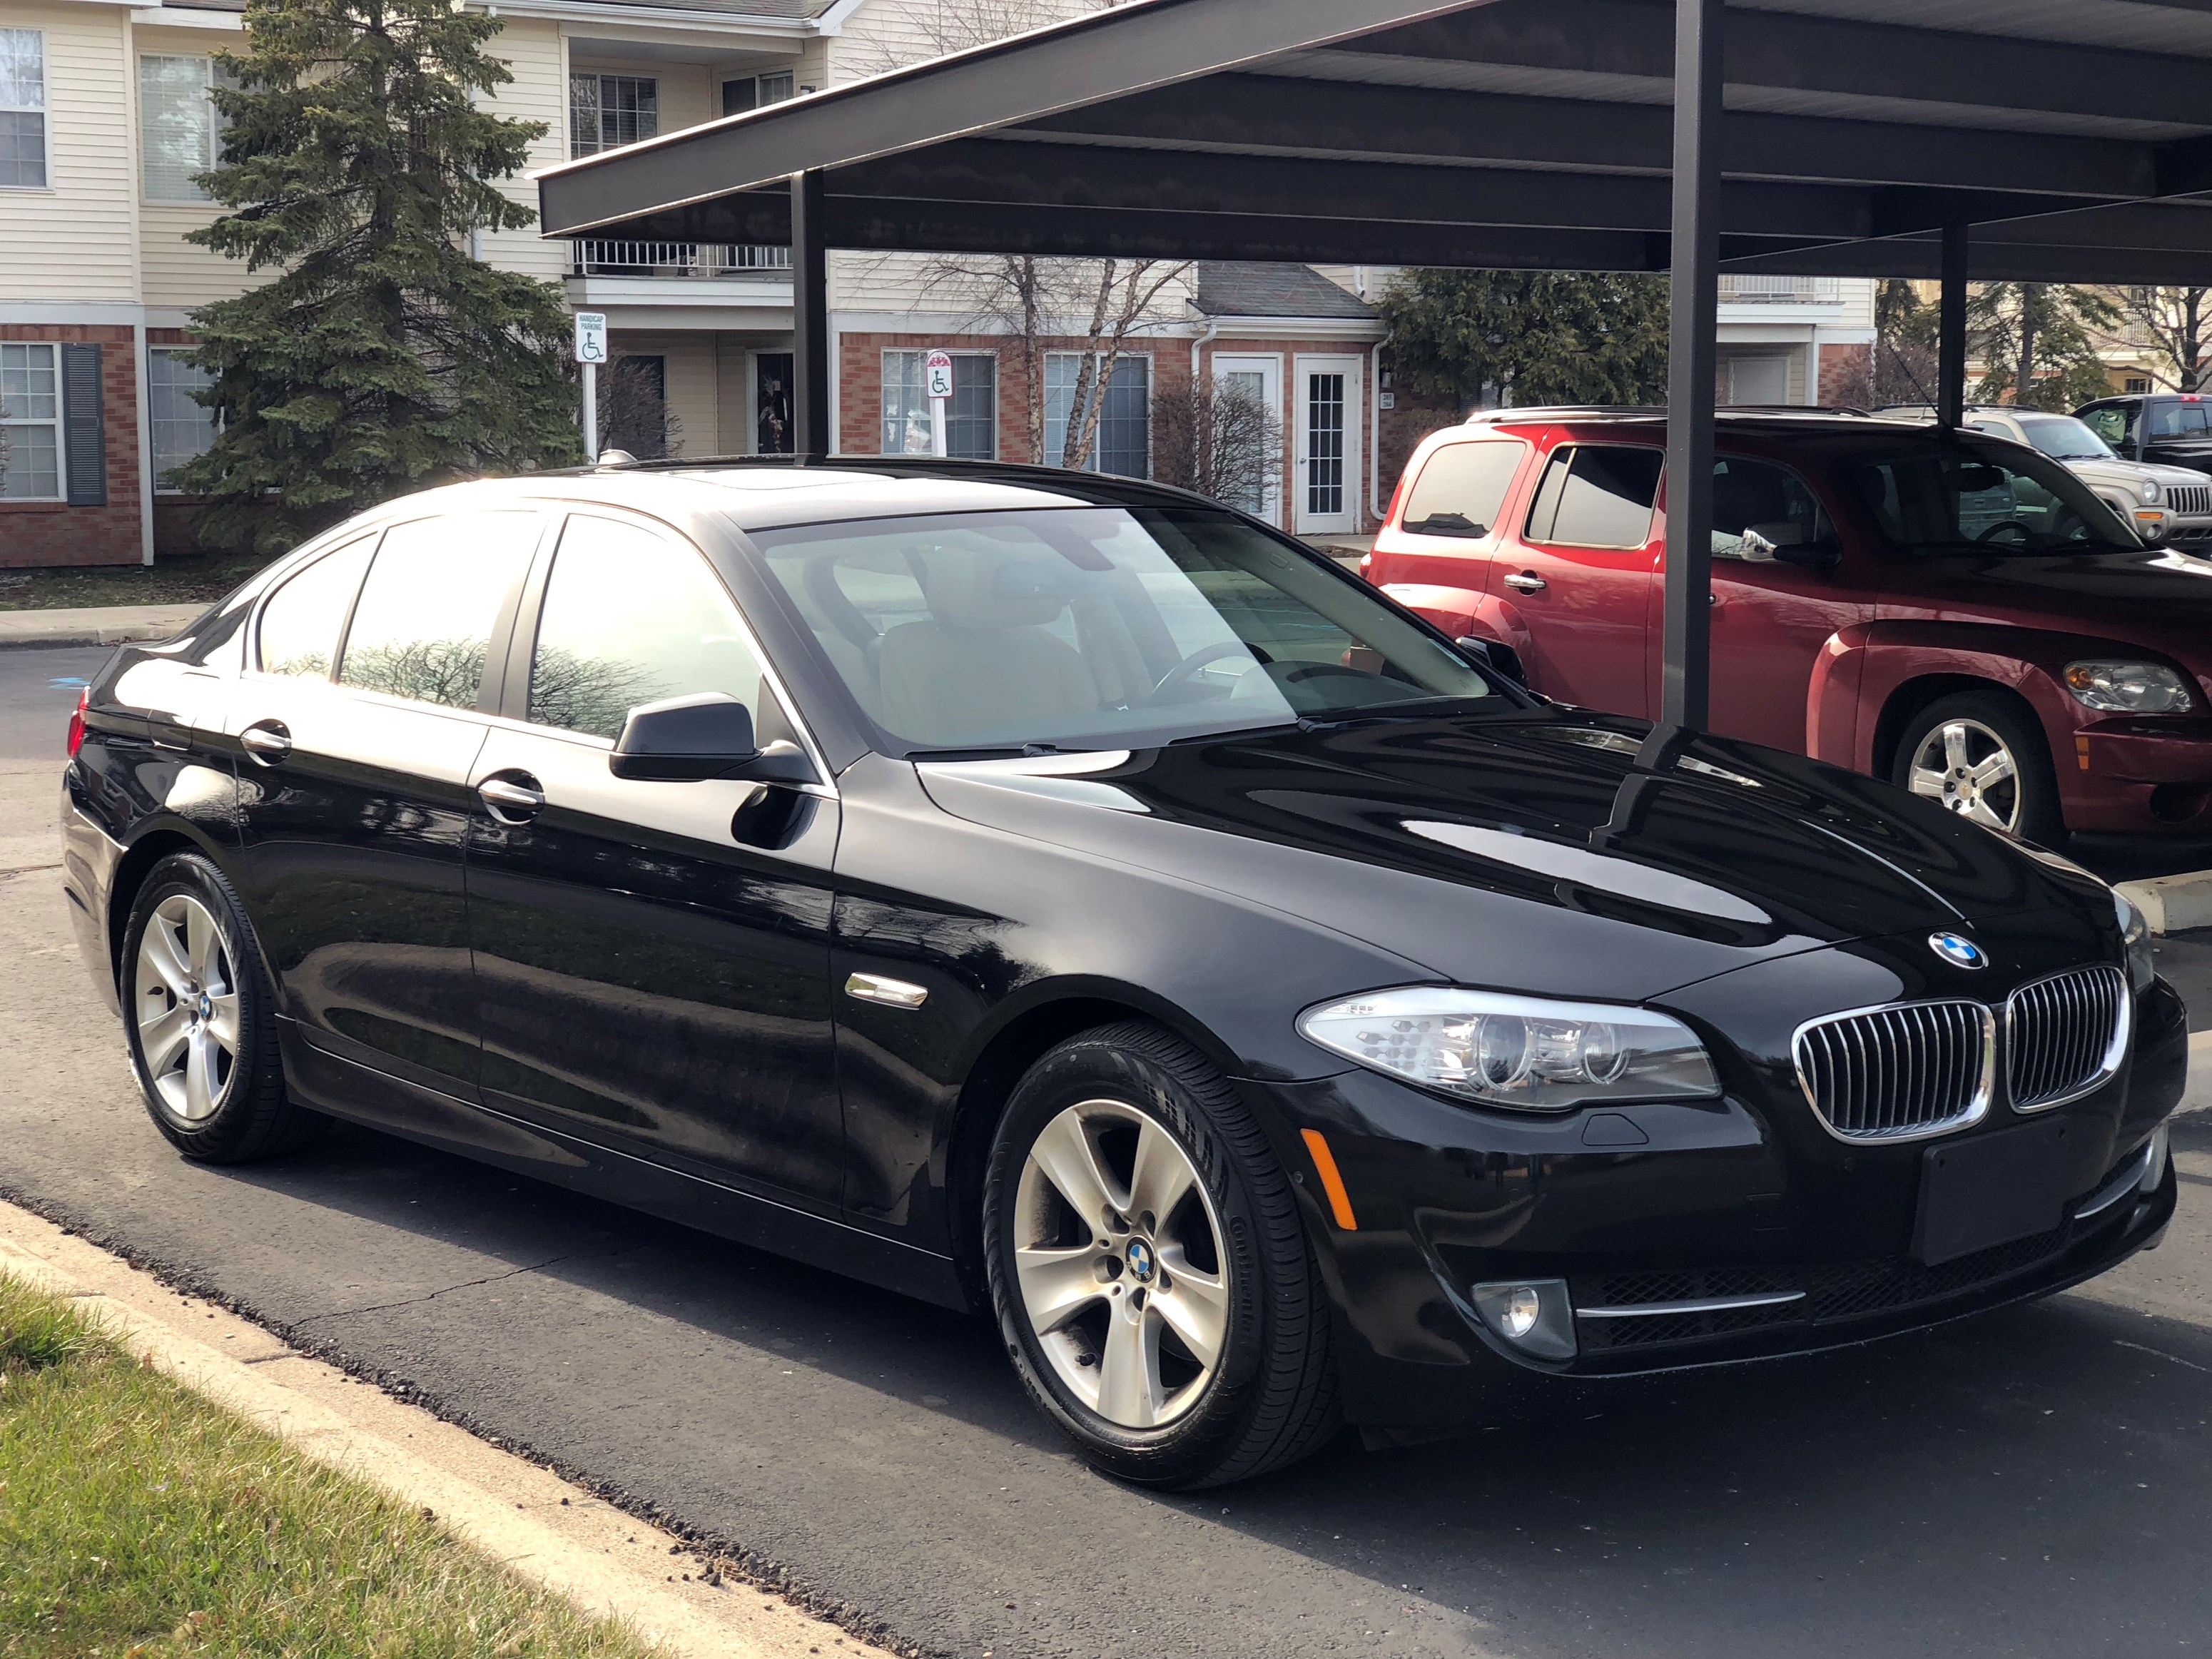 BMW 528i Excellent Condition Certified Pre Owned Used BMW 5 Series